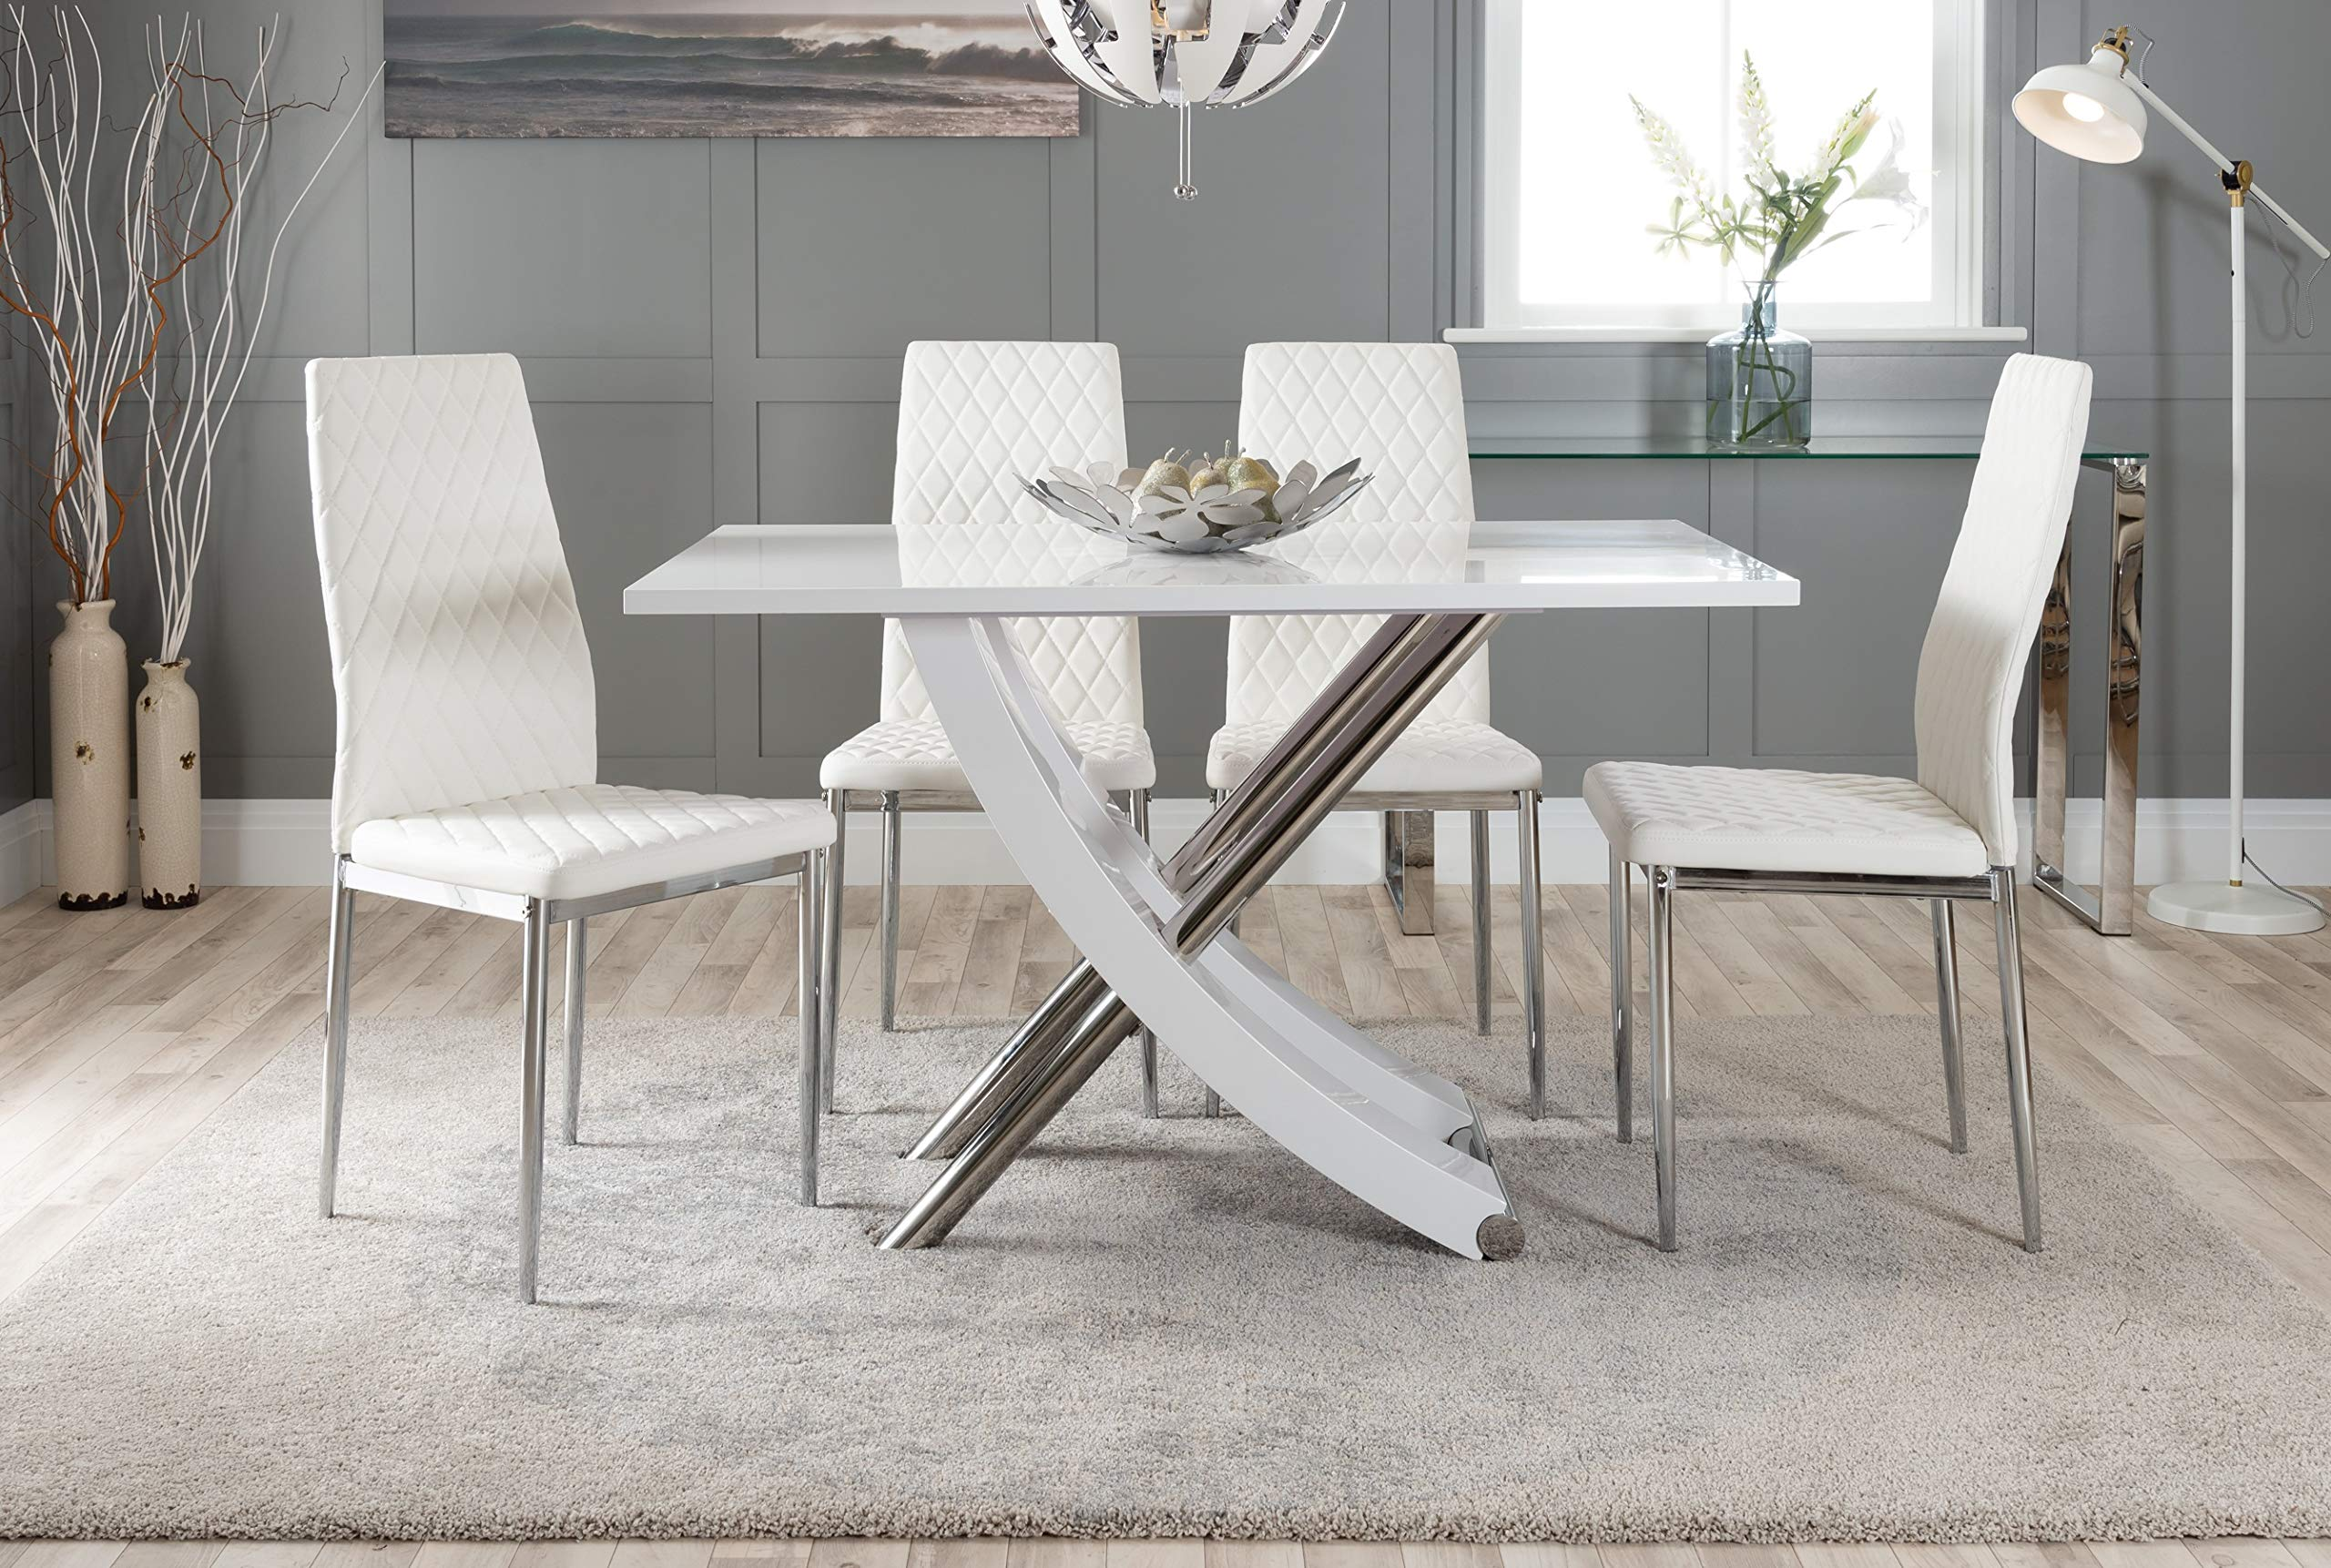 Furniturebox UK Mayfair 8 Modern White High Gloss Stainless Steel Metal  Dining Table And 8 Stylish Milan Dining Chairs Seats Set (Dining Table + 8